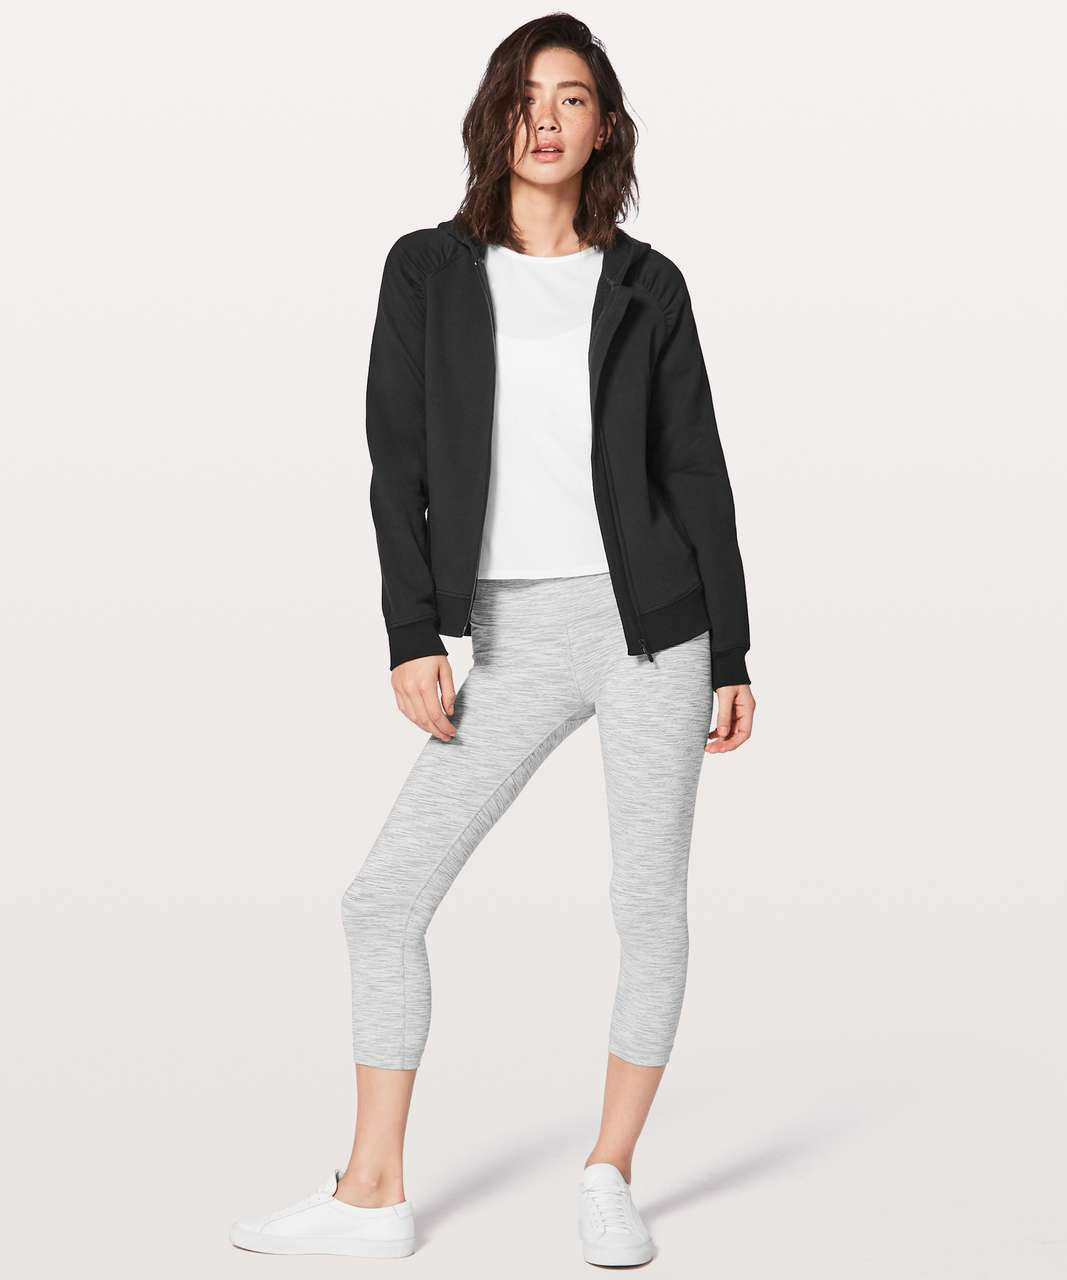 Lululemon Cool & Collected Jacket - Black